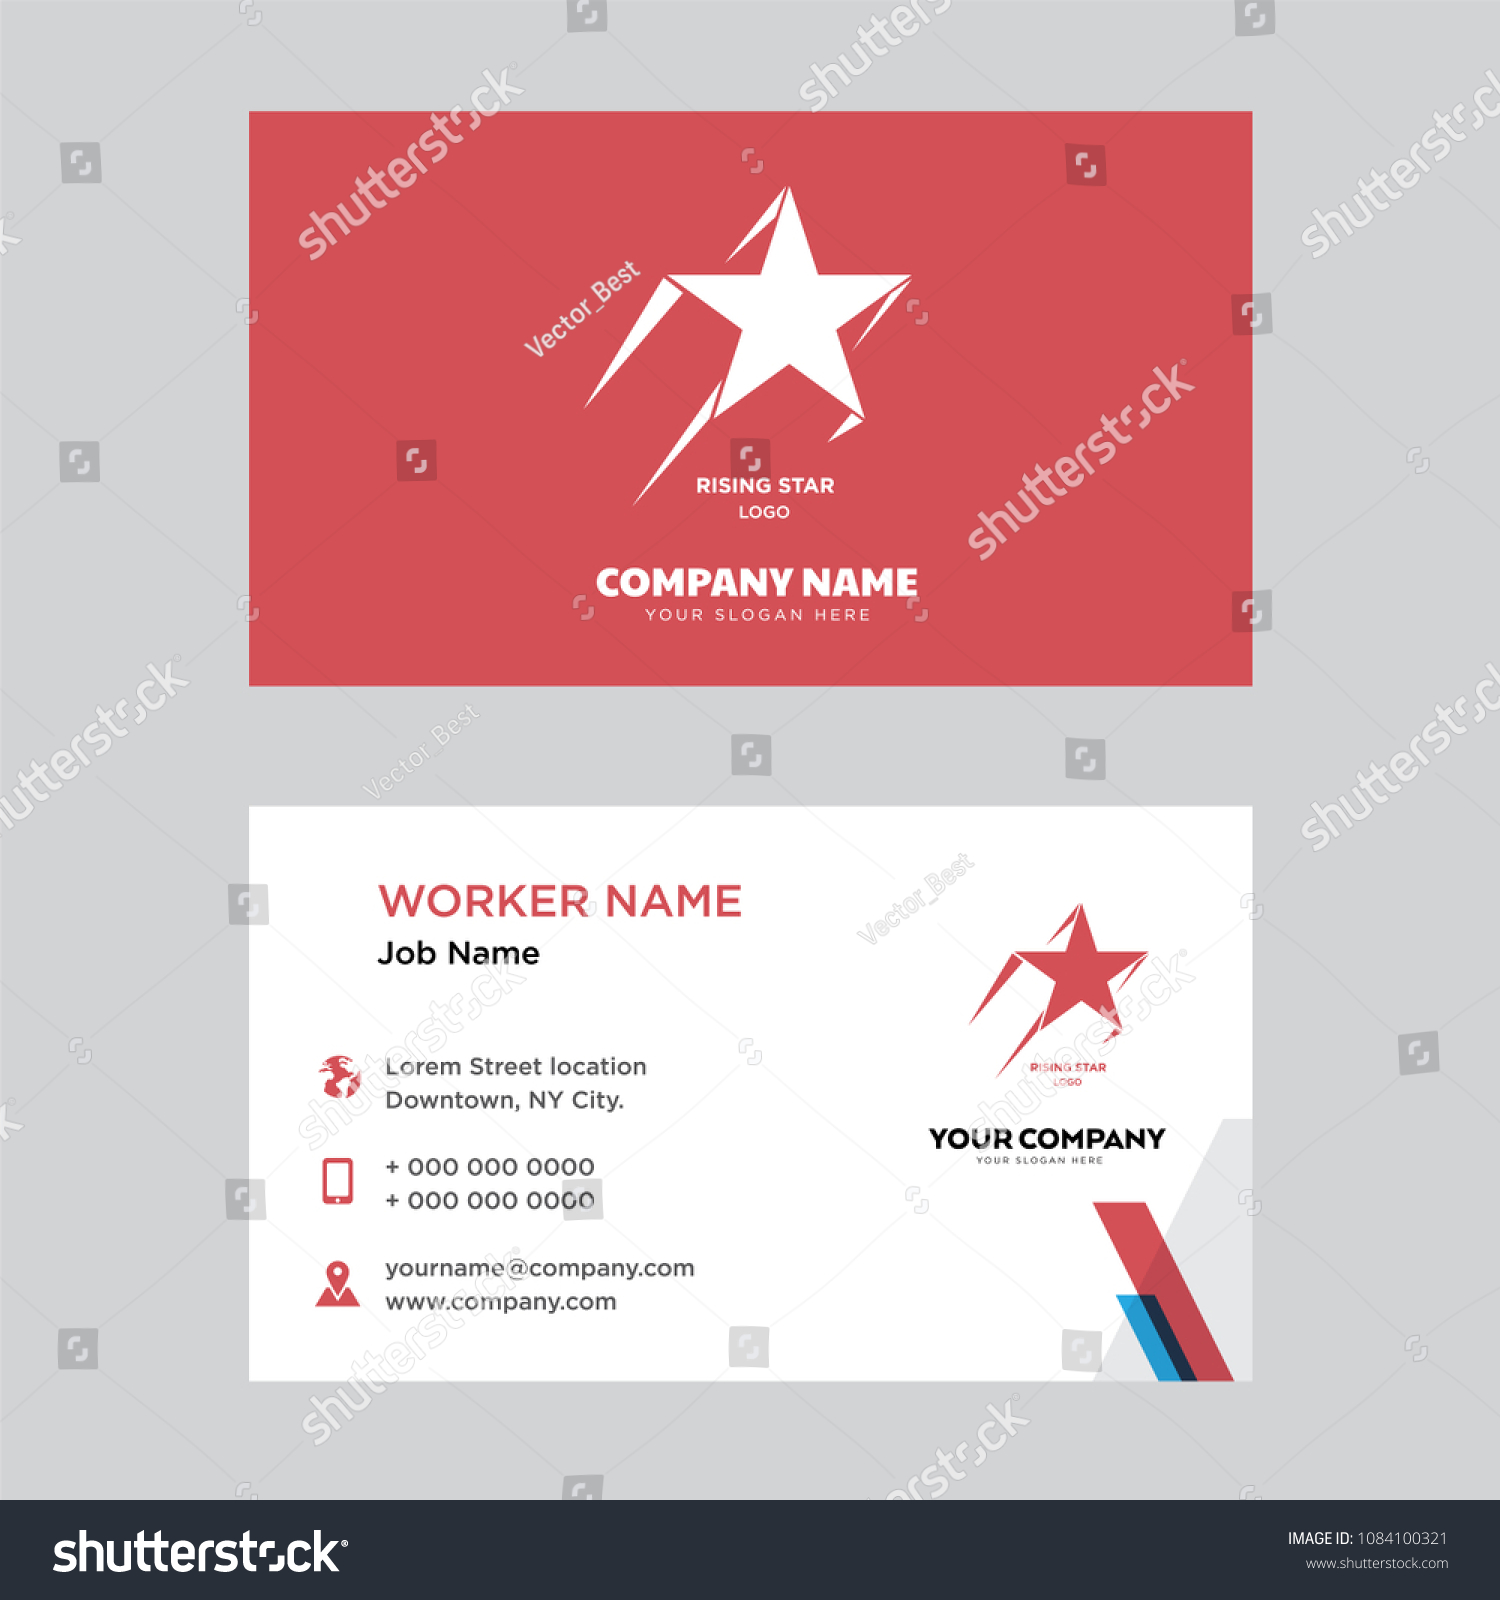 Rising Star Business Card Design Template Stock Vector HD (Royalty ...